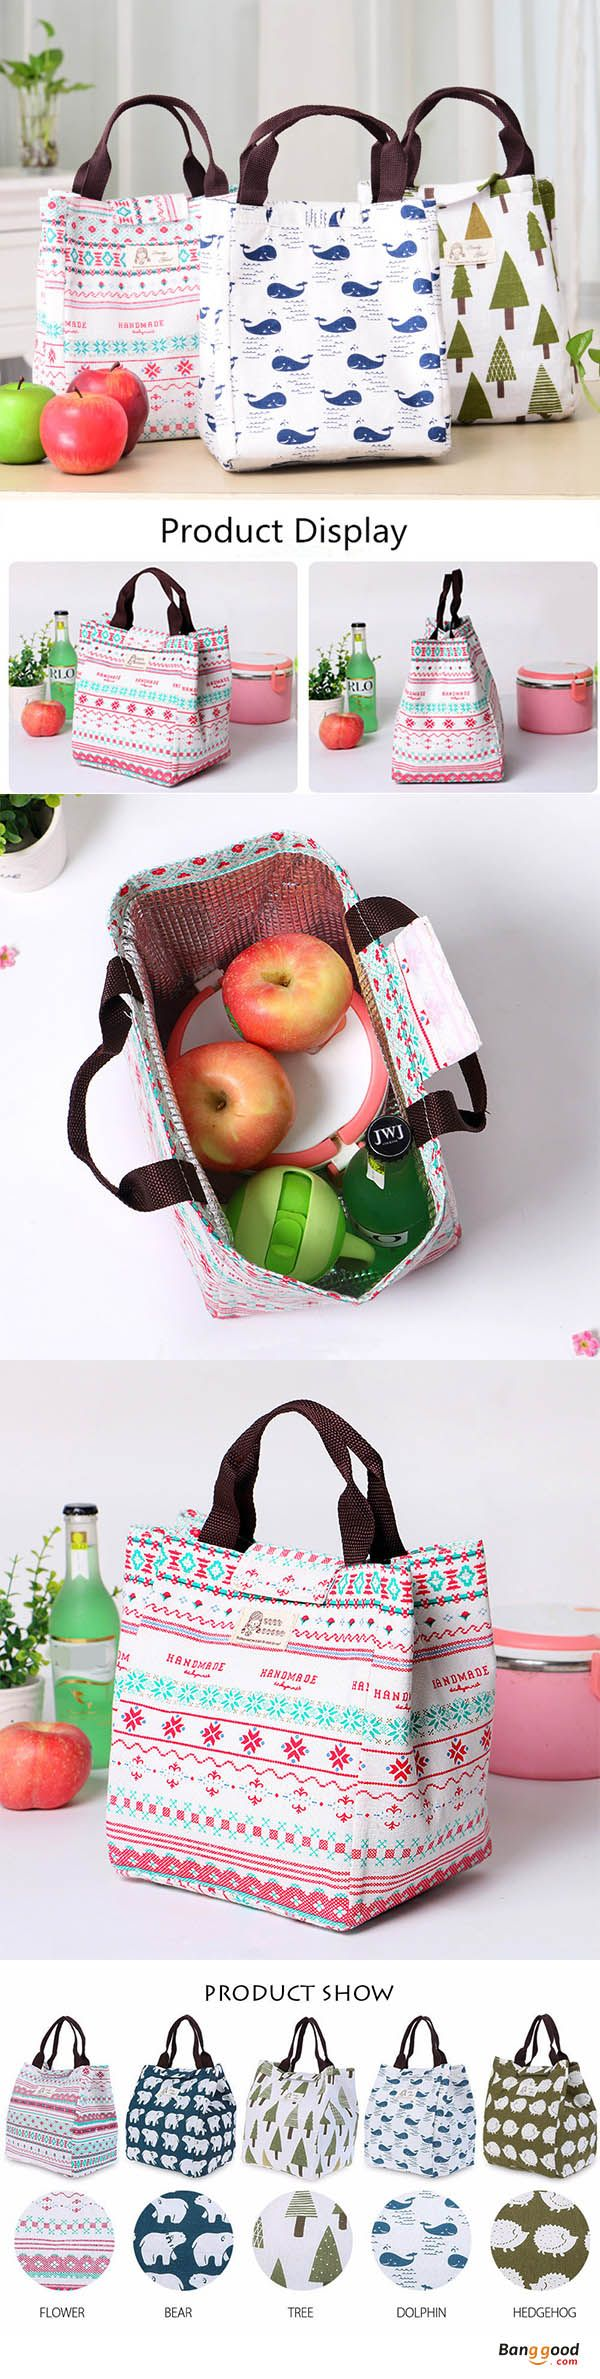 US$5.98 + Free shipping. Woman Hand-held Lunch Tote Bag Travel Picnic Cooler Insulated Handbag Waterproof Storage Containers. Made of canvas, 5 Colors to Match Your Style >>> To view further, visit now.